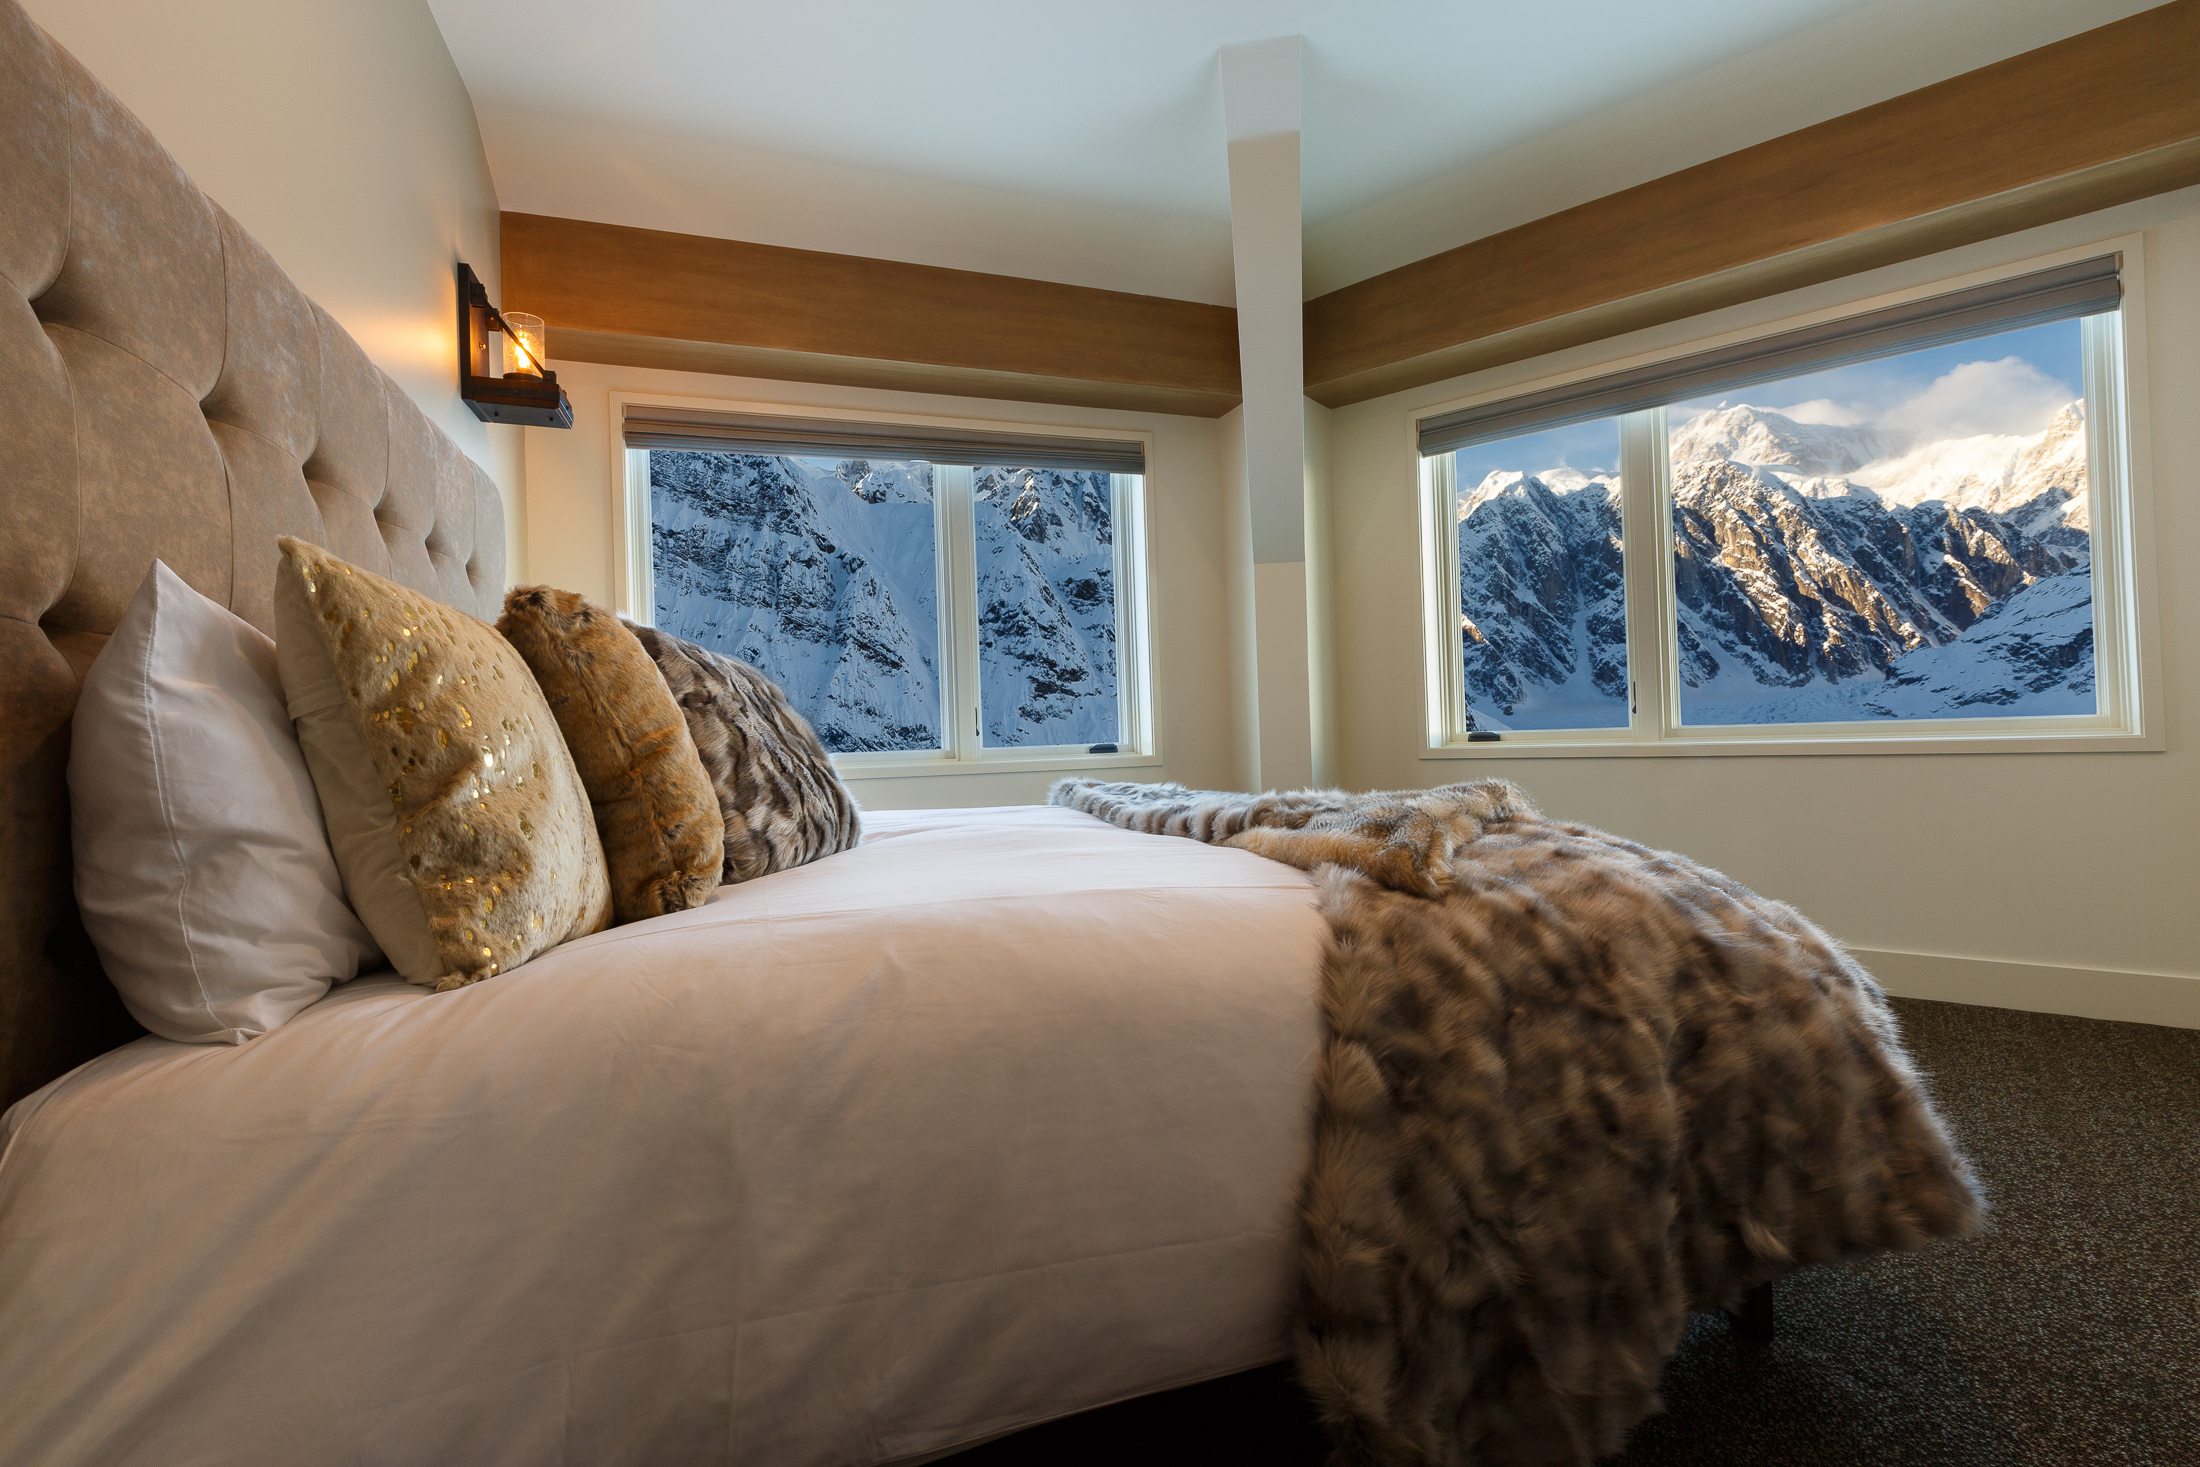 The five-bedroom chalet has panoramic views of the glacier and mountains.